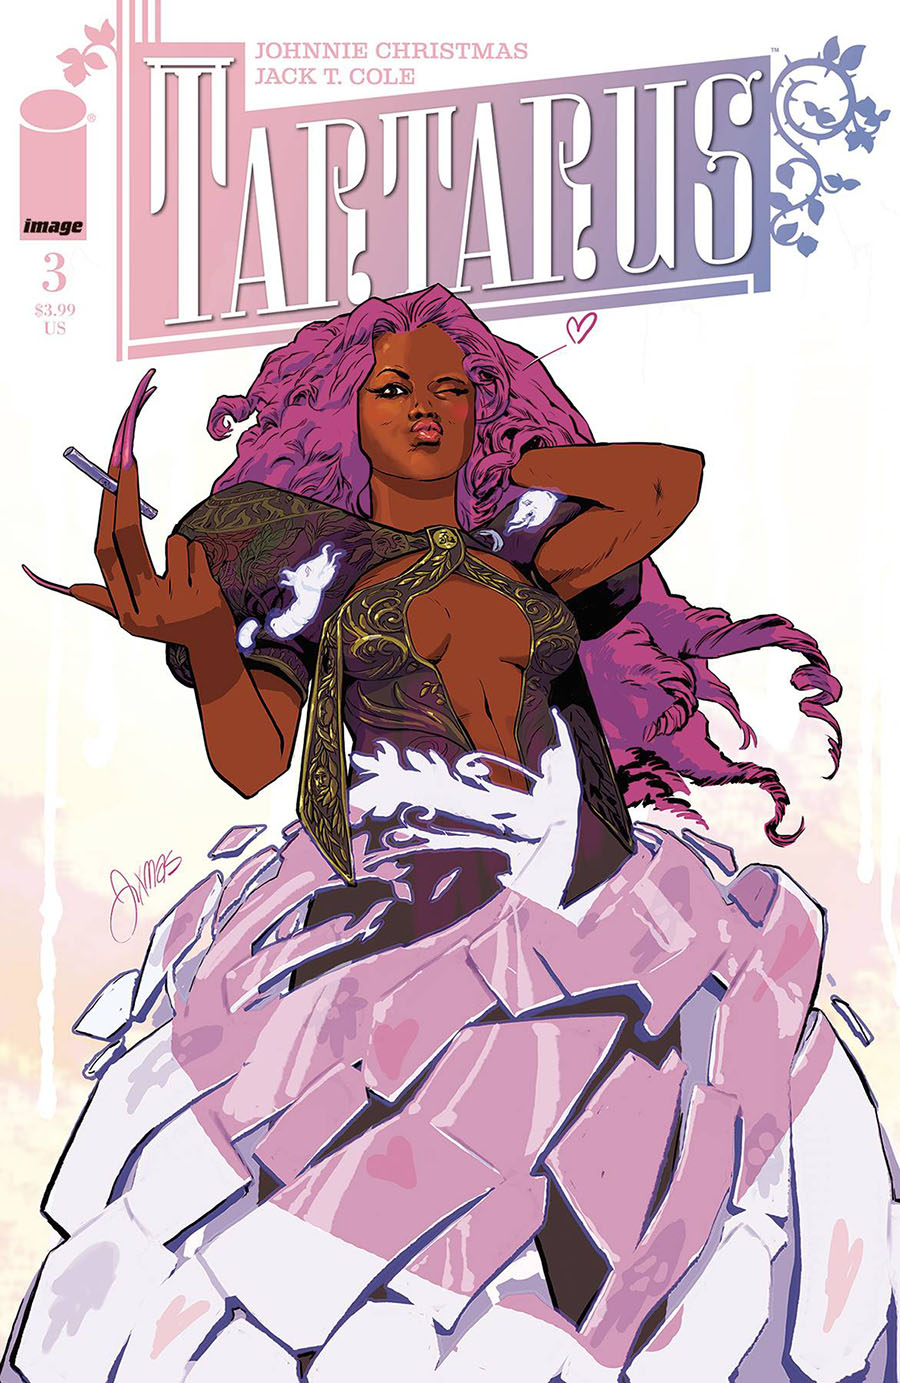 Tartarus #3 Cover B Variant Johnnie Christmas Cover